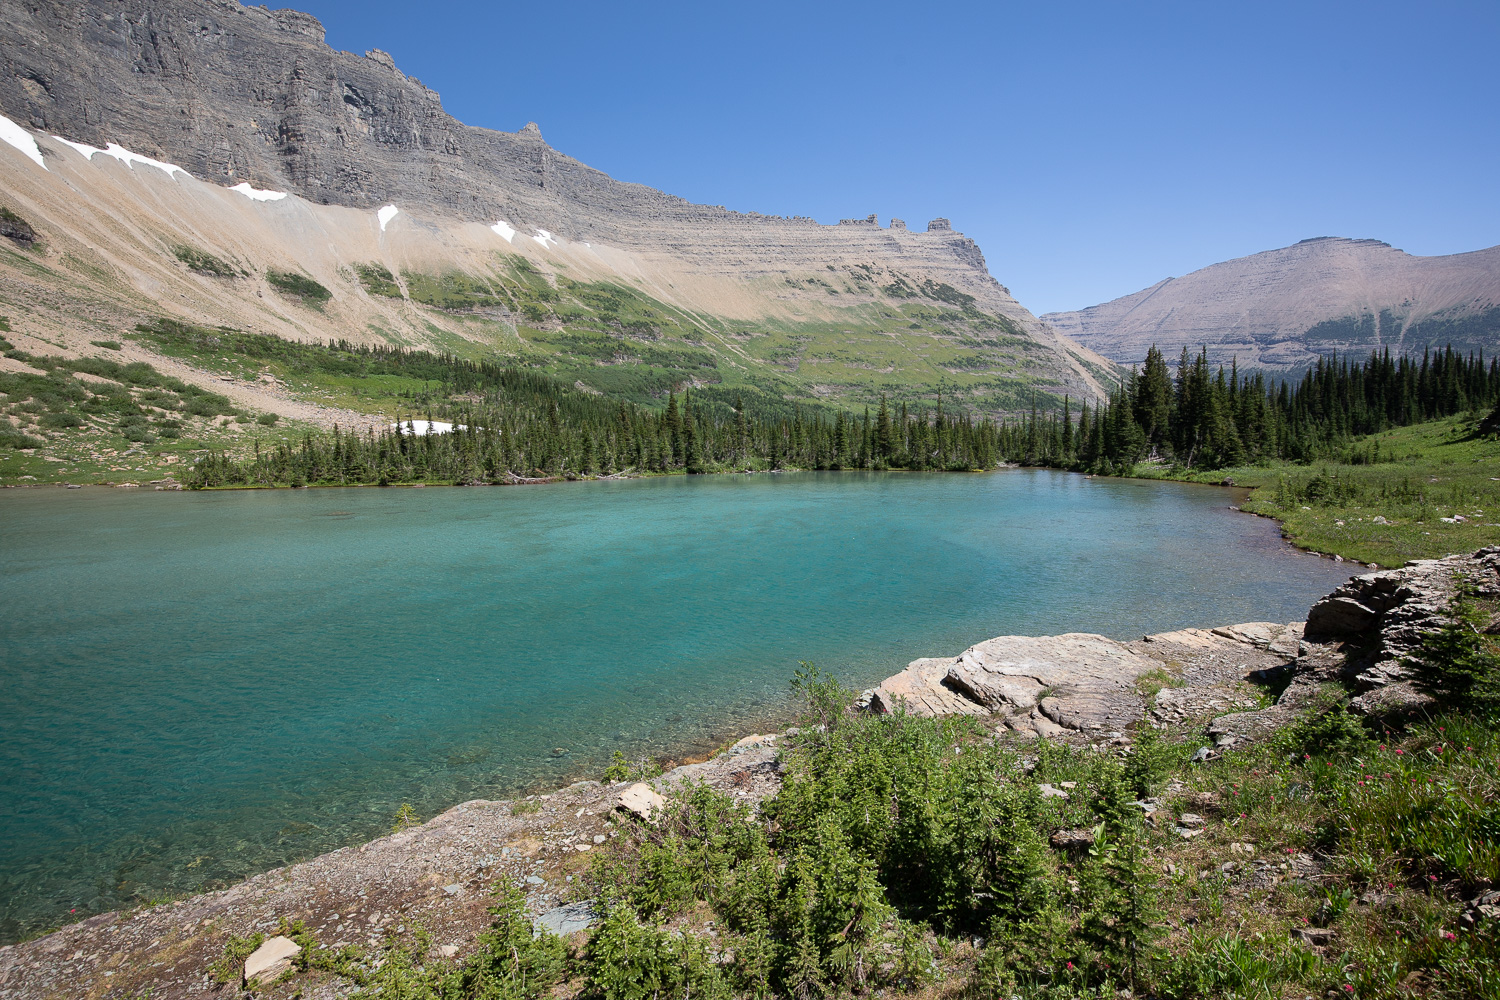 Views of the unnamed lake.